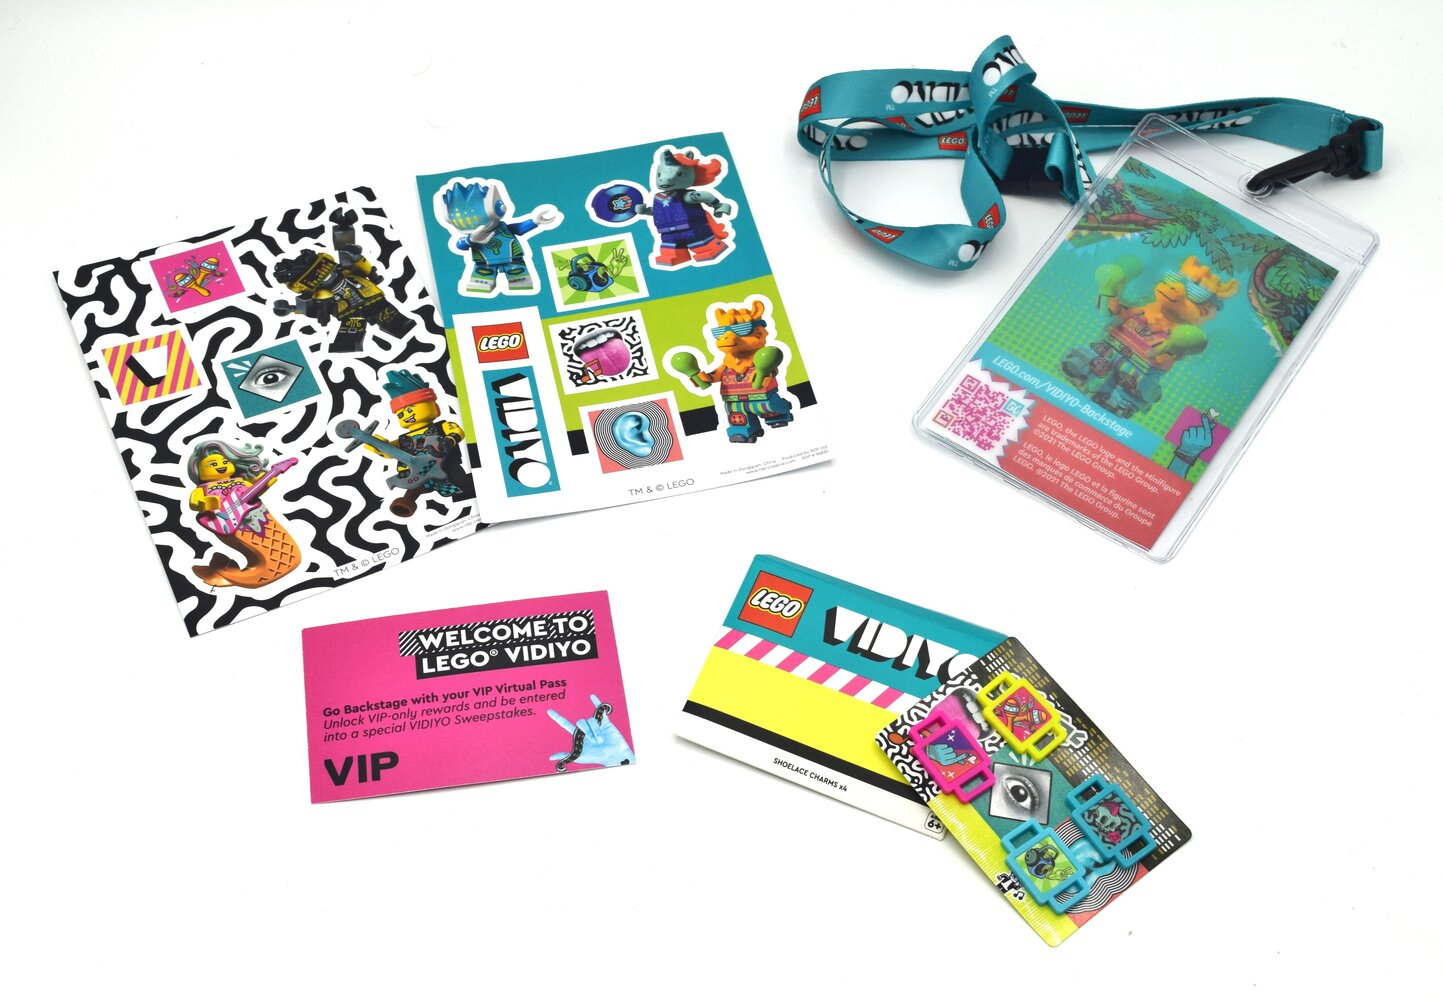 VIDIYO VIP Welcome Pack